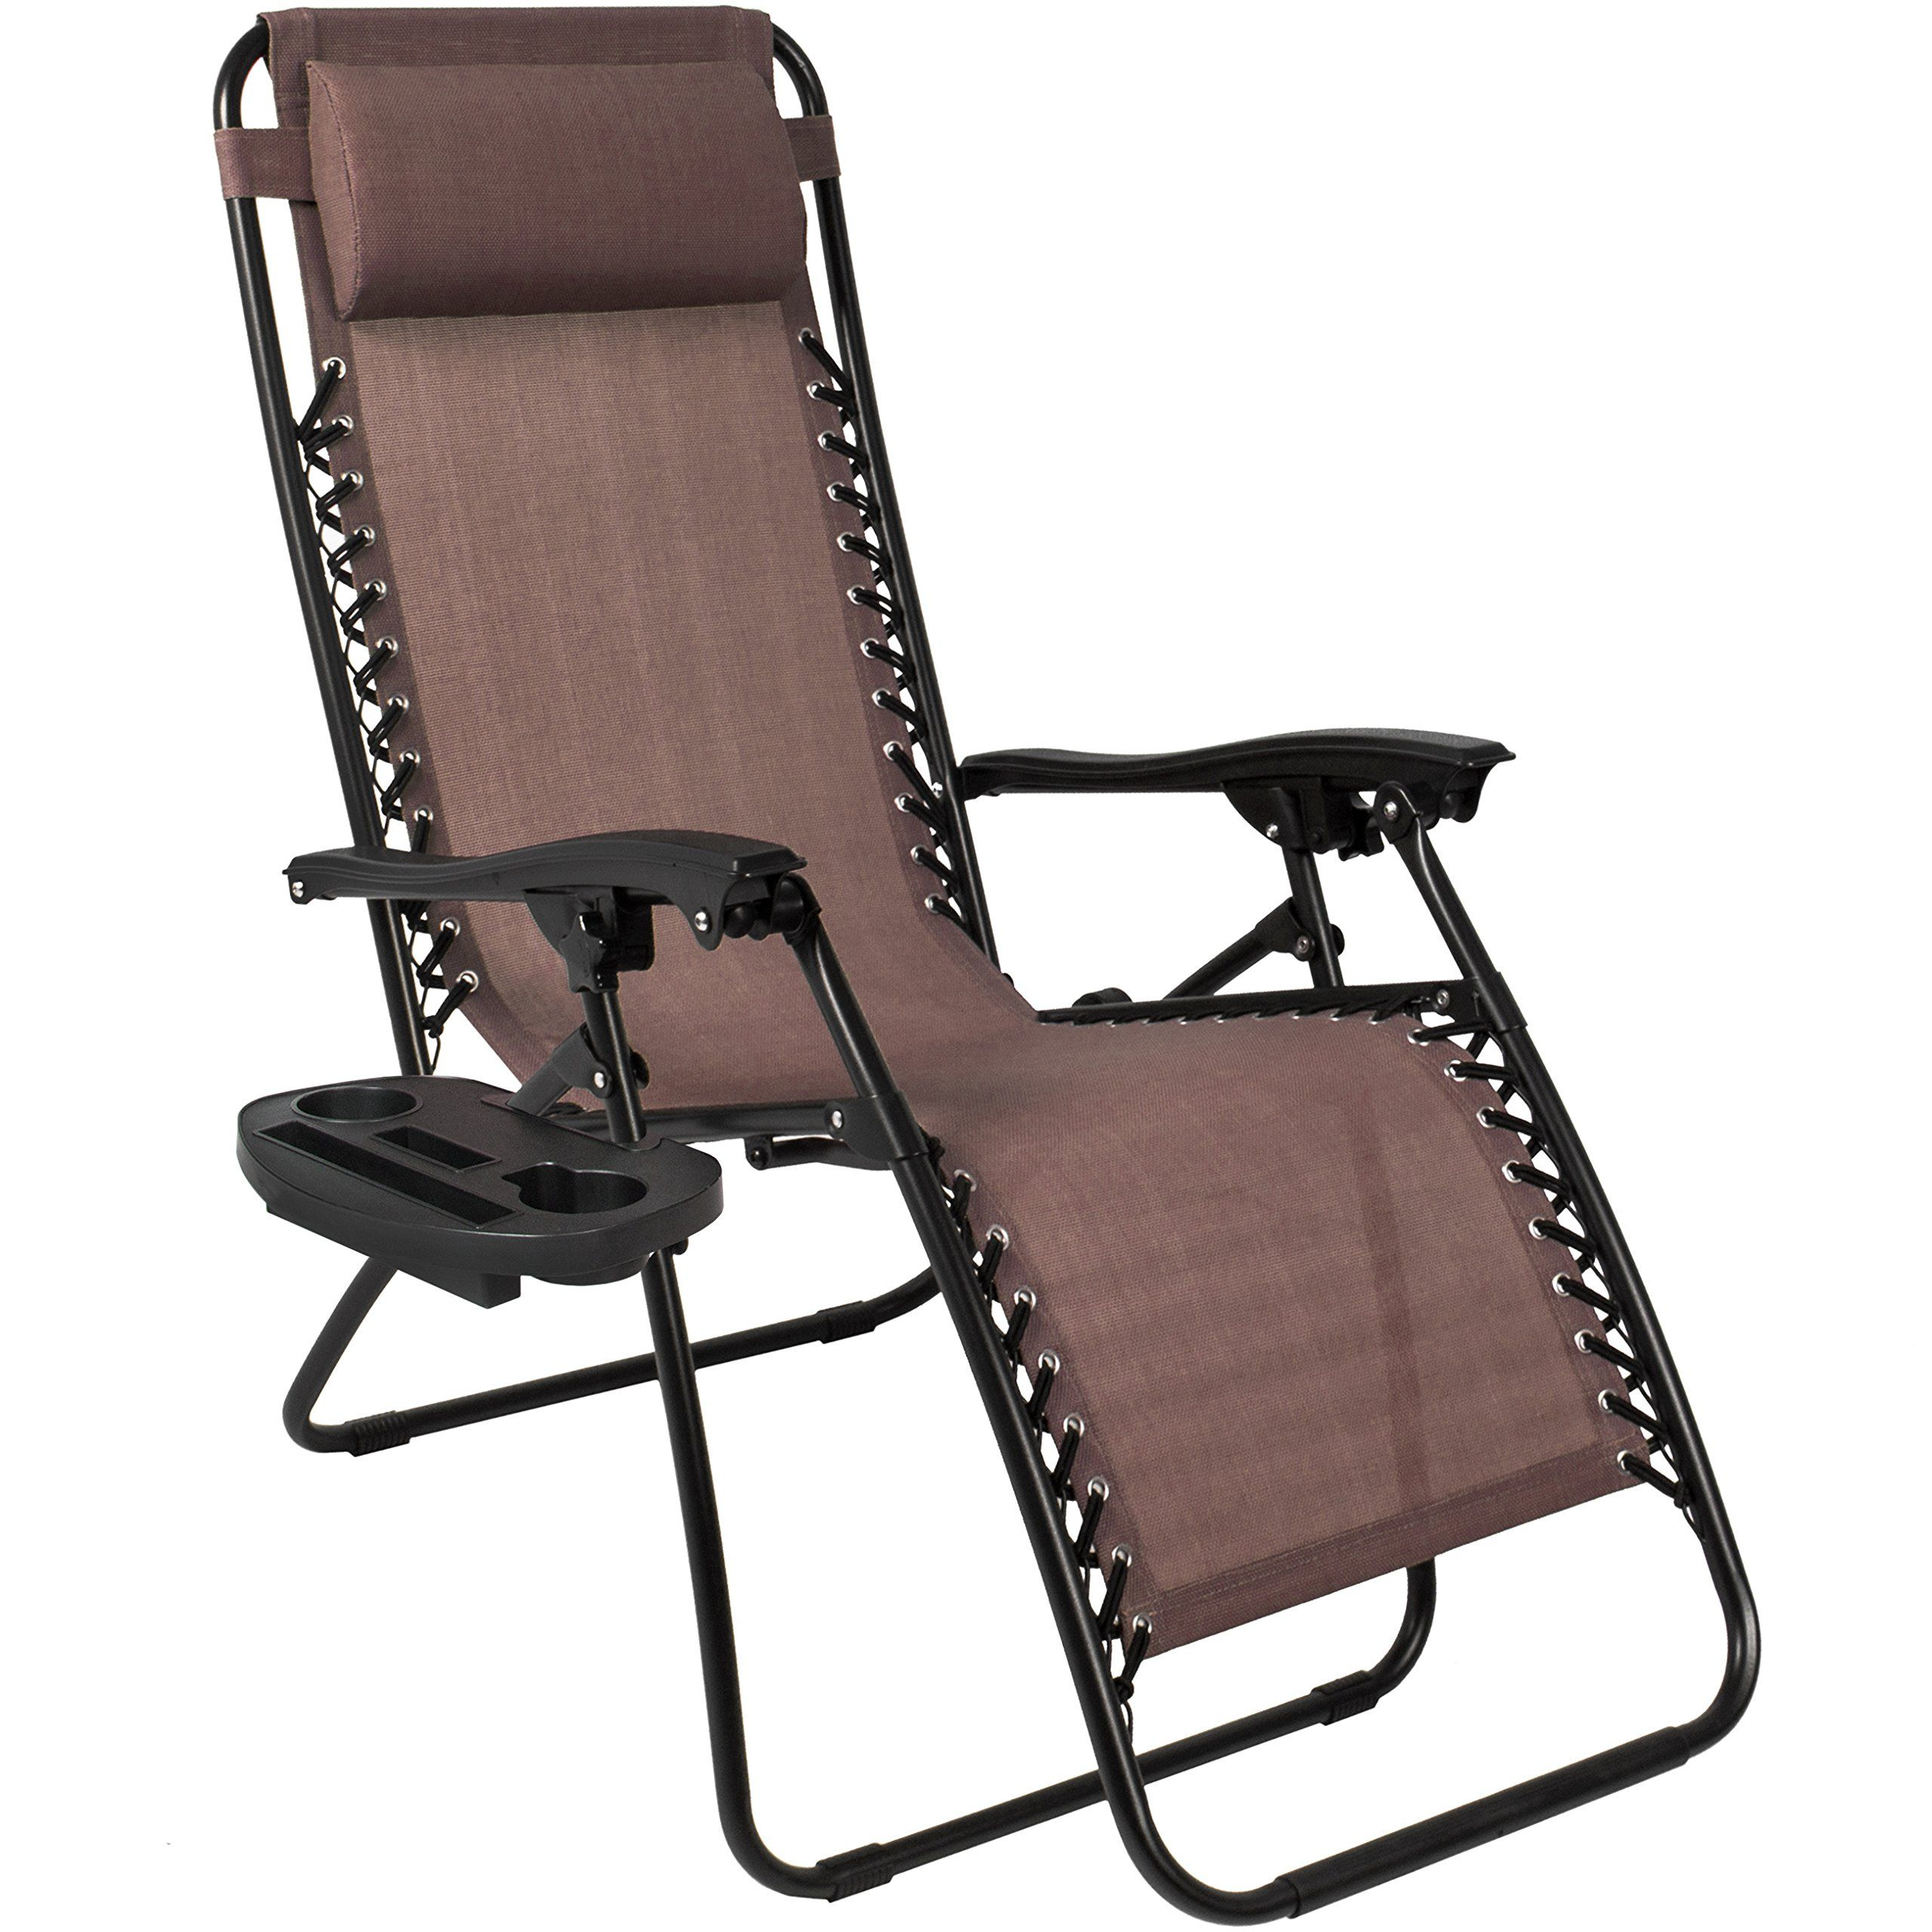 zero gravity chair 2 pack brown leather accent chairs best choice products 2pack lounge patio outdoor yard beach more info could be found at the image url